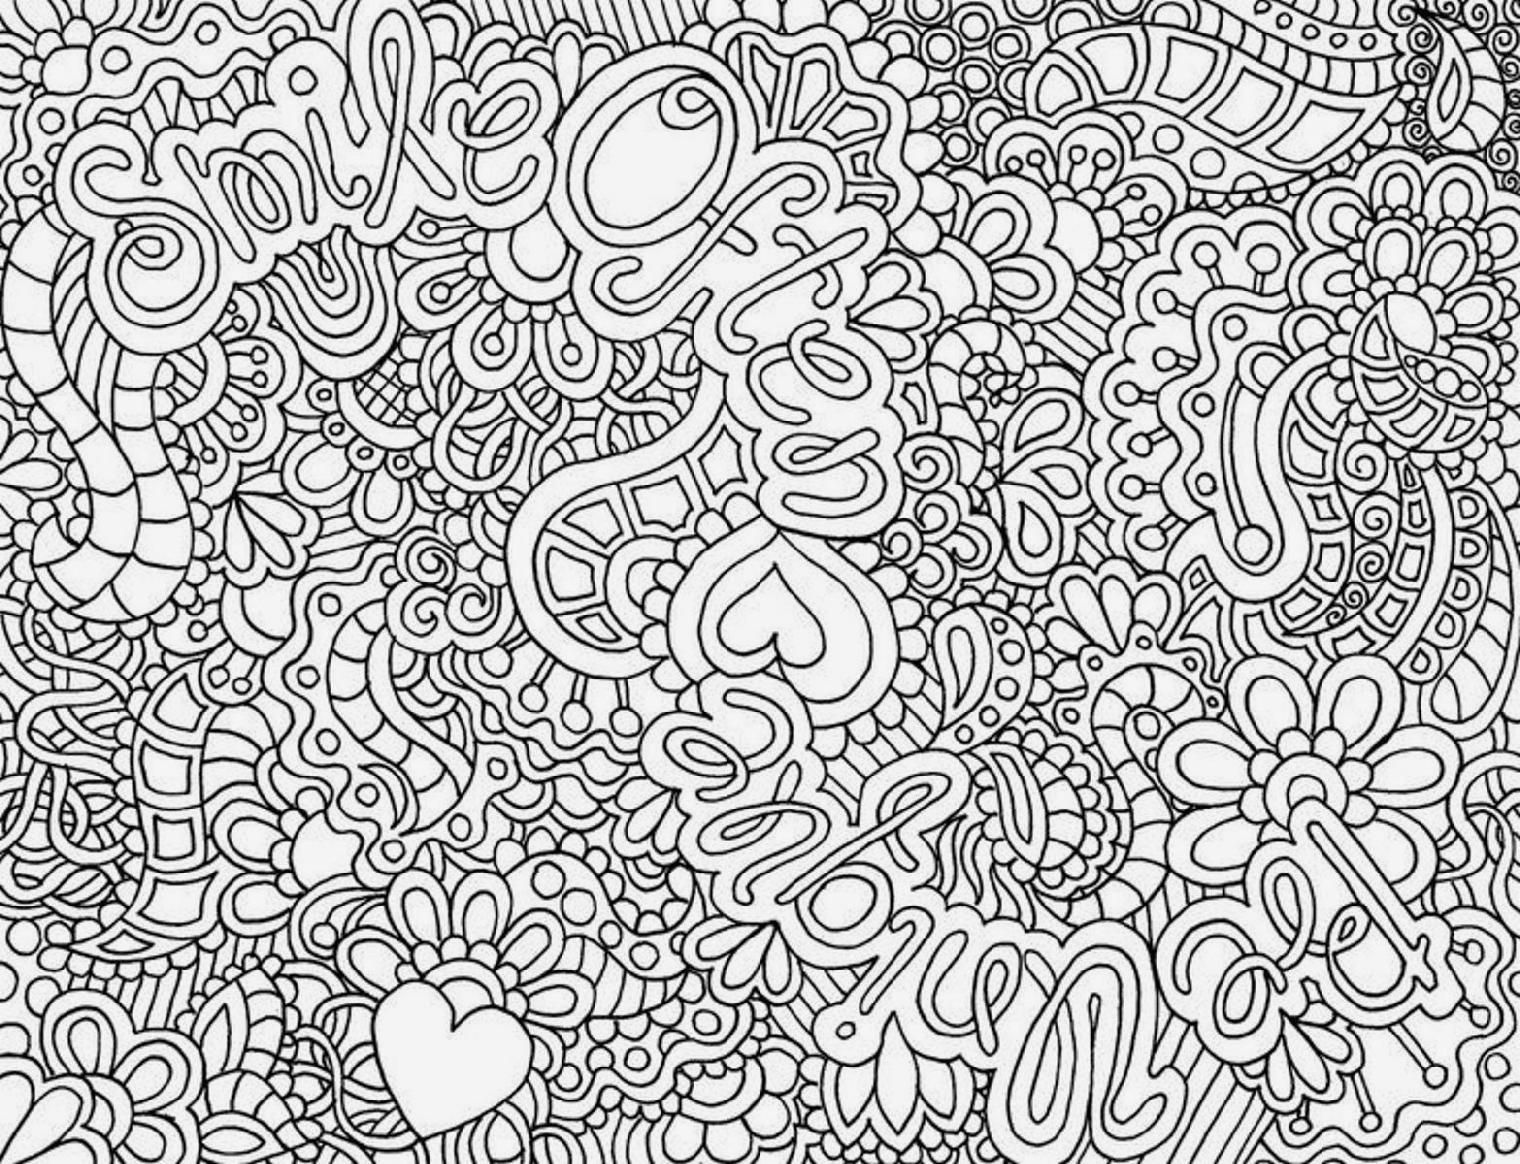 Free coloring pages for adults - These Free Printable Coloring Book Pages Of Flowers Provide Hours Of Online And